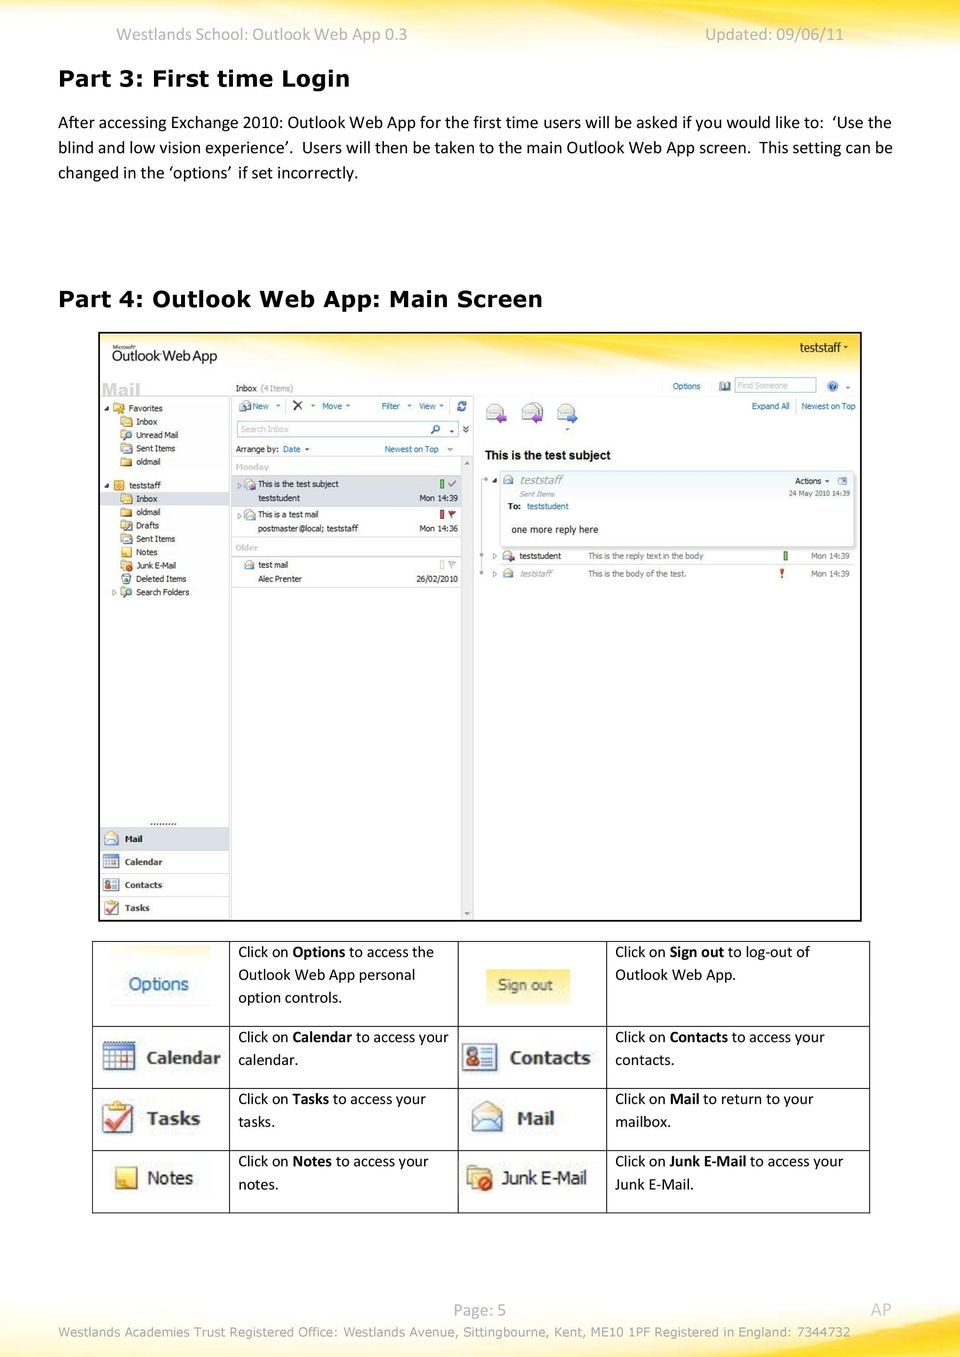 Part 4: Outlook Web App: Main Screen Click on Options to access the Outlook Web App personal option controls. Click on Calendar to access your calendar.